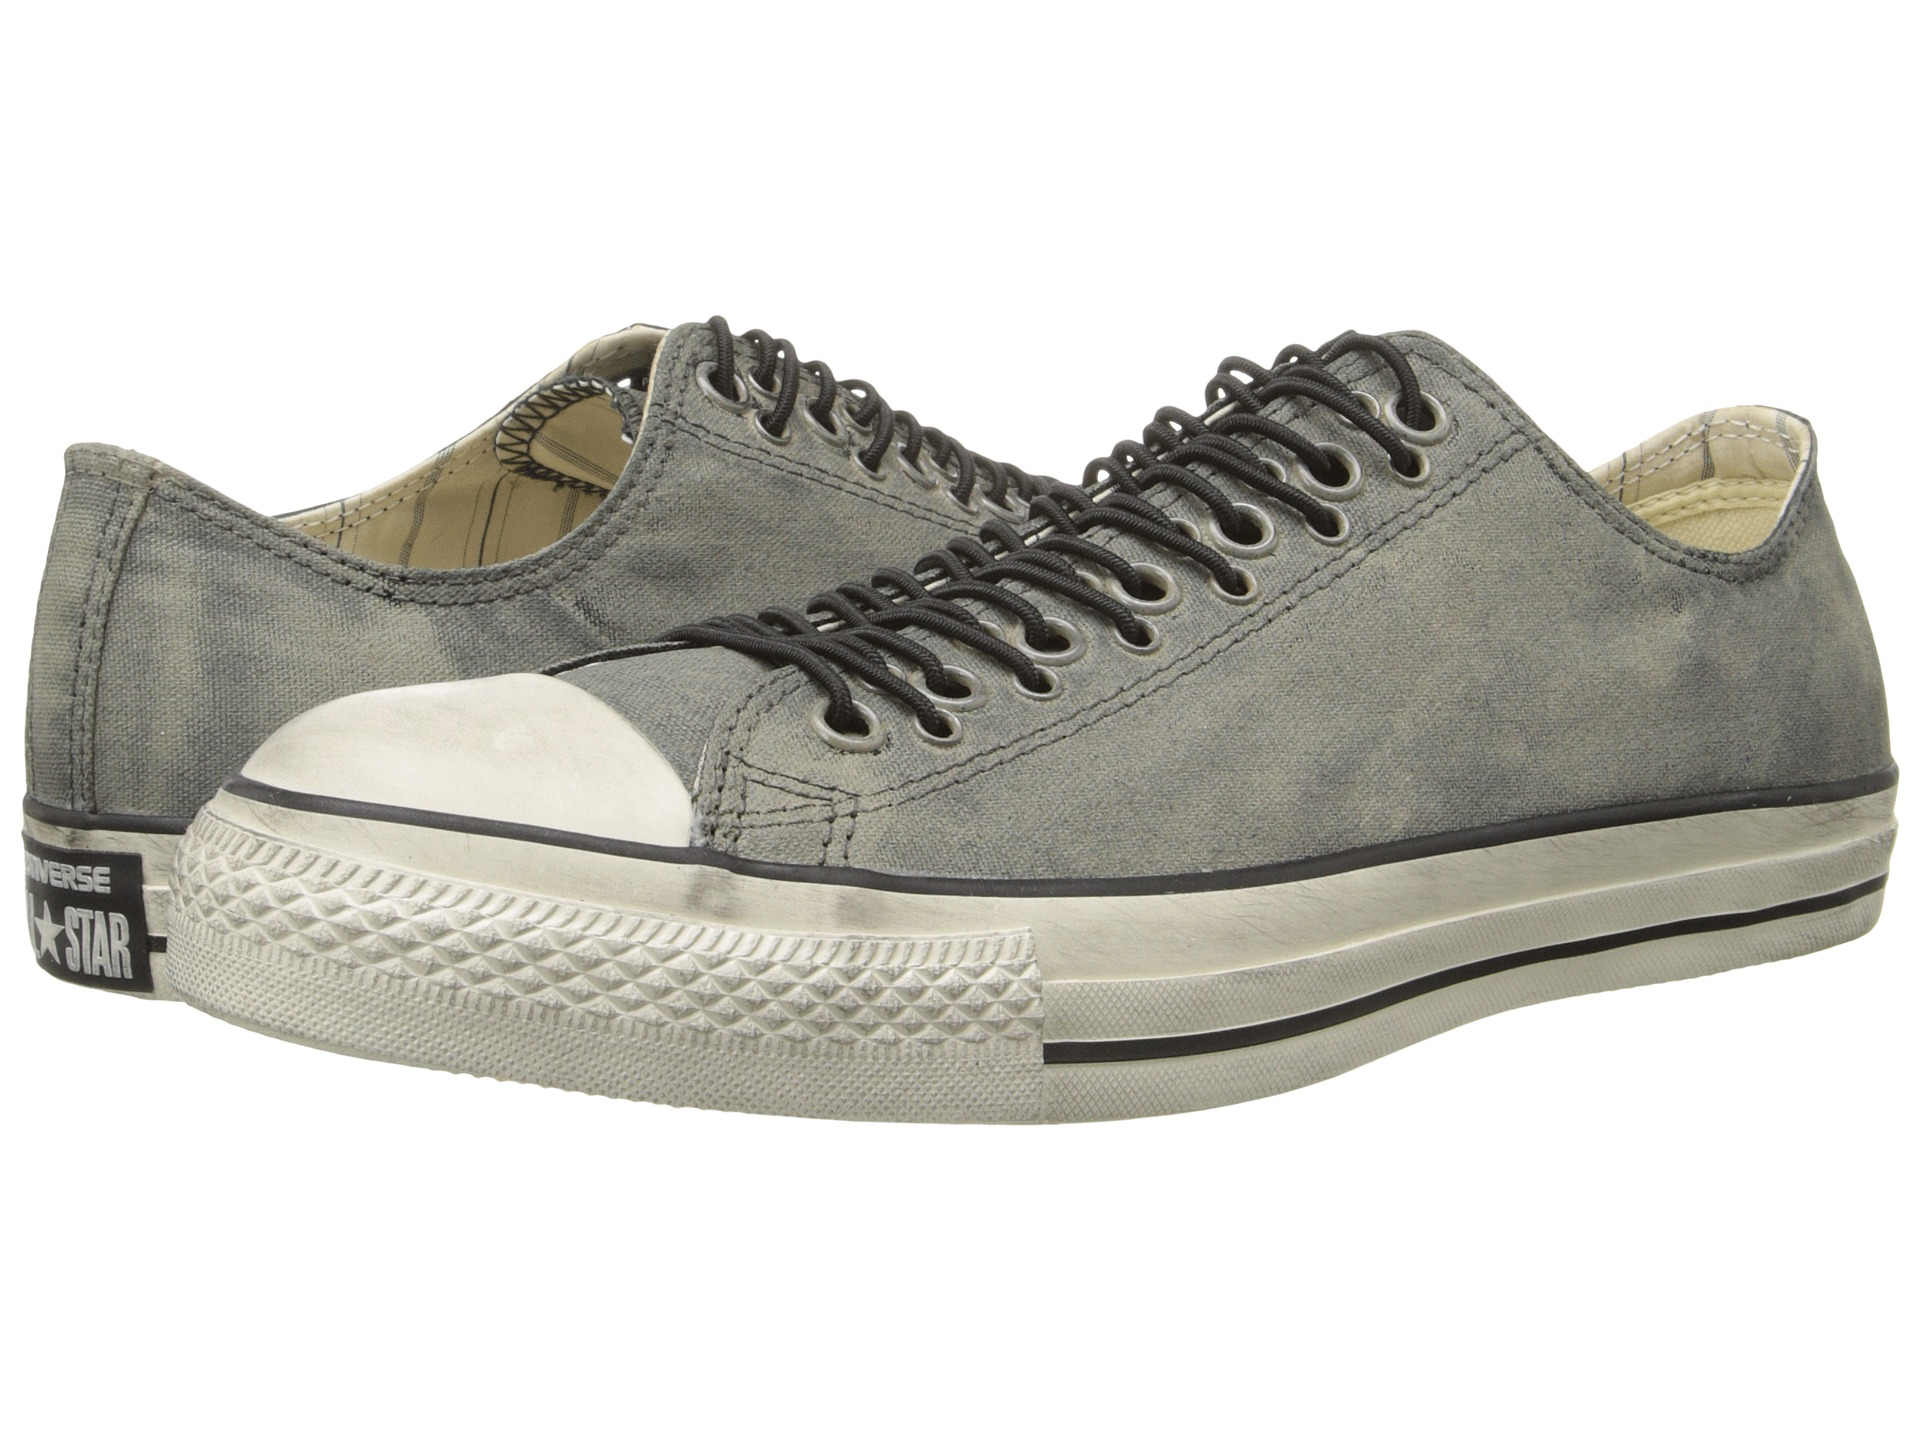 dae7d0aeefc6 Lyst - Converse Chuck Taylor All Star Multi Eyelet Painted Canvas in Gray